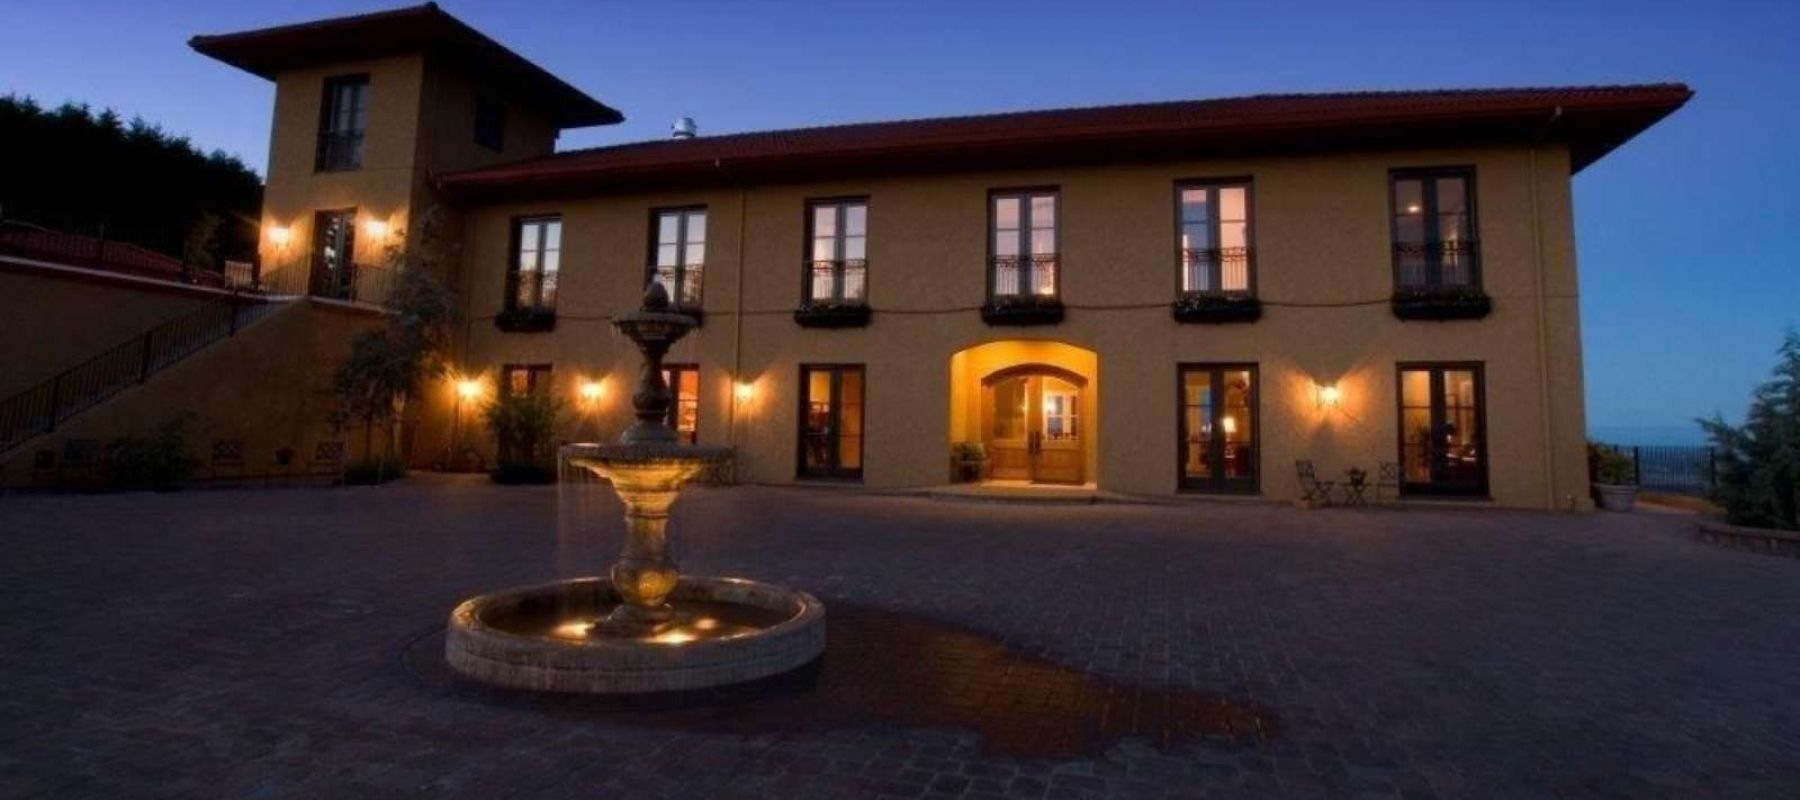 Our wine country lodging offers affordable luxury with